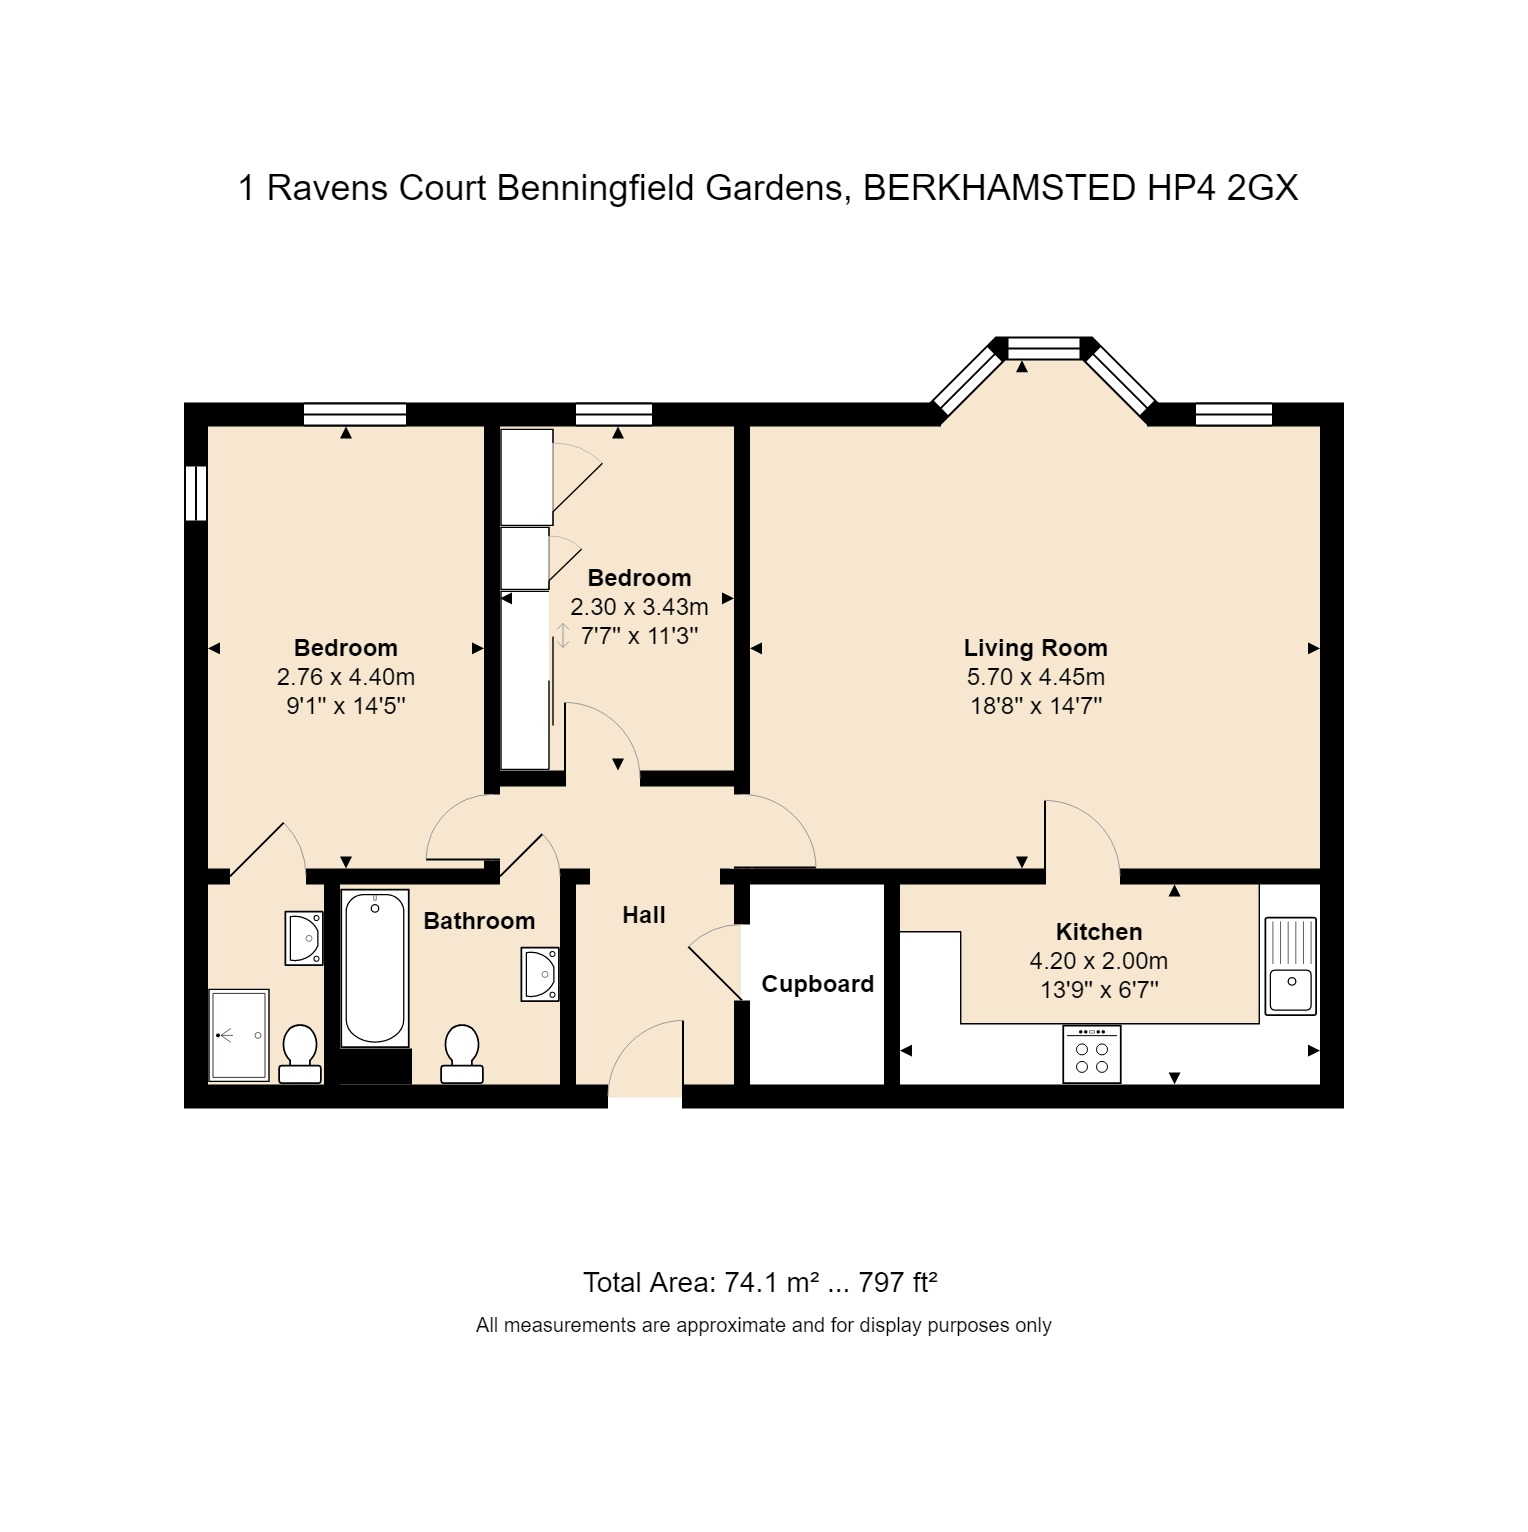 1 Ravens Court Floorplan